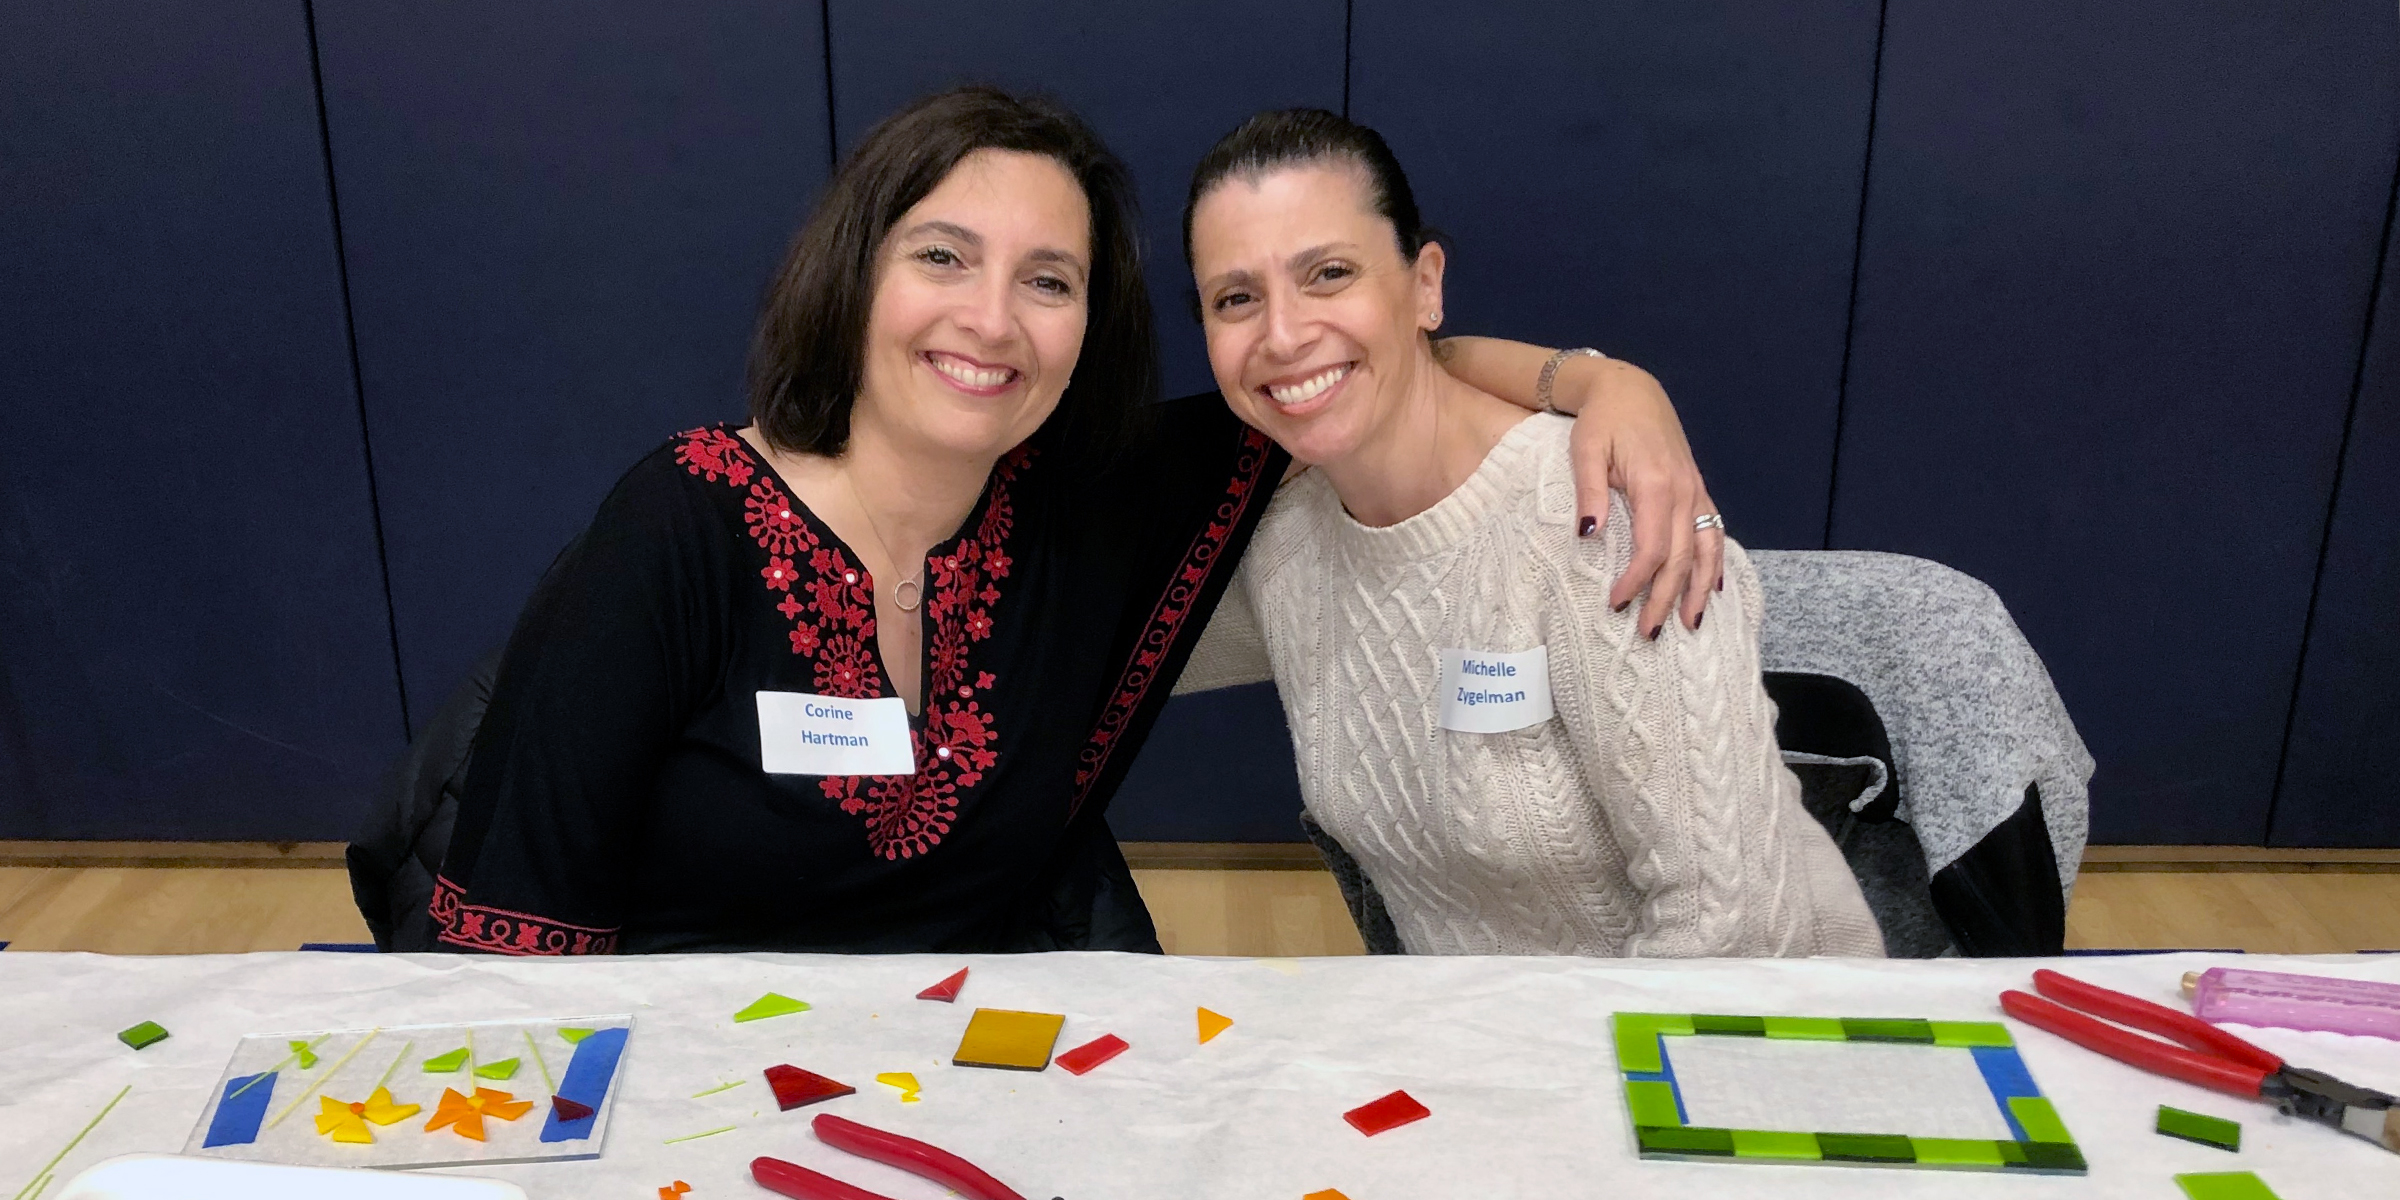 """<a href=""""/about""""                                     target="""""""">                                                                 <span class=""""slider_title"""">                                     YOU BELONG HERE                                </span>                                                                 </a>                                                                                                                                                                                       <span class=""""slider_description"""">EXPERIENCE VALLEY BETH SHALOM</span>                                                                                     <a href=""""/about"""" class=""""slider_link""""                             target="""""""">                             Learn More                            </a>"""